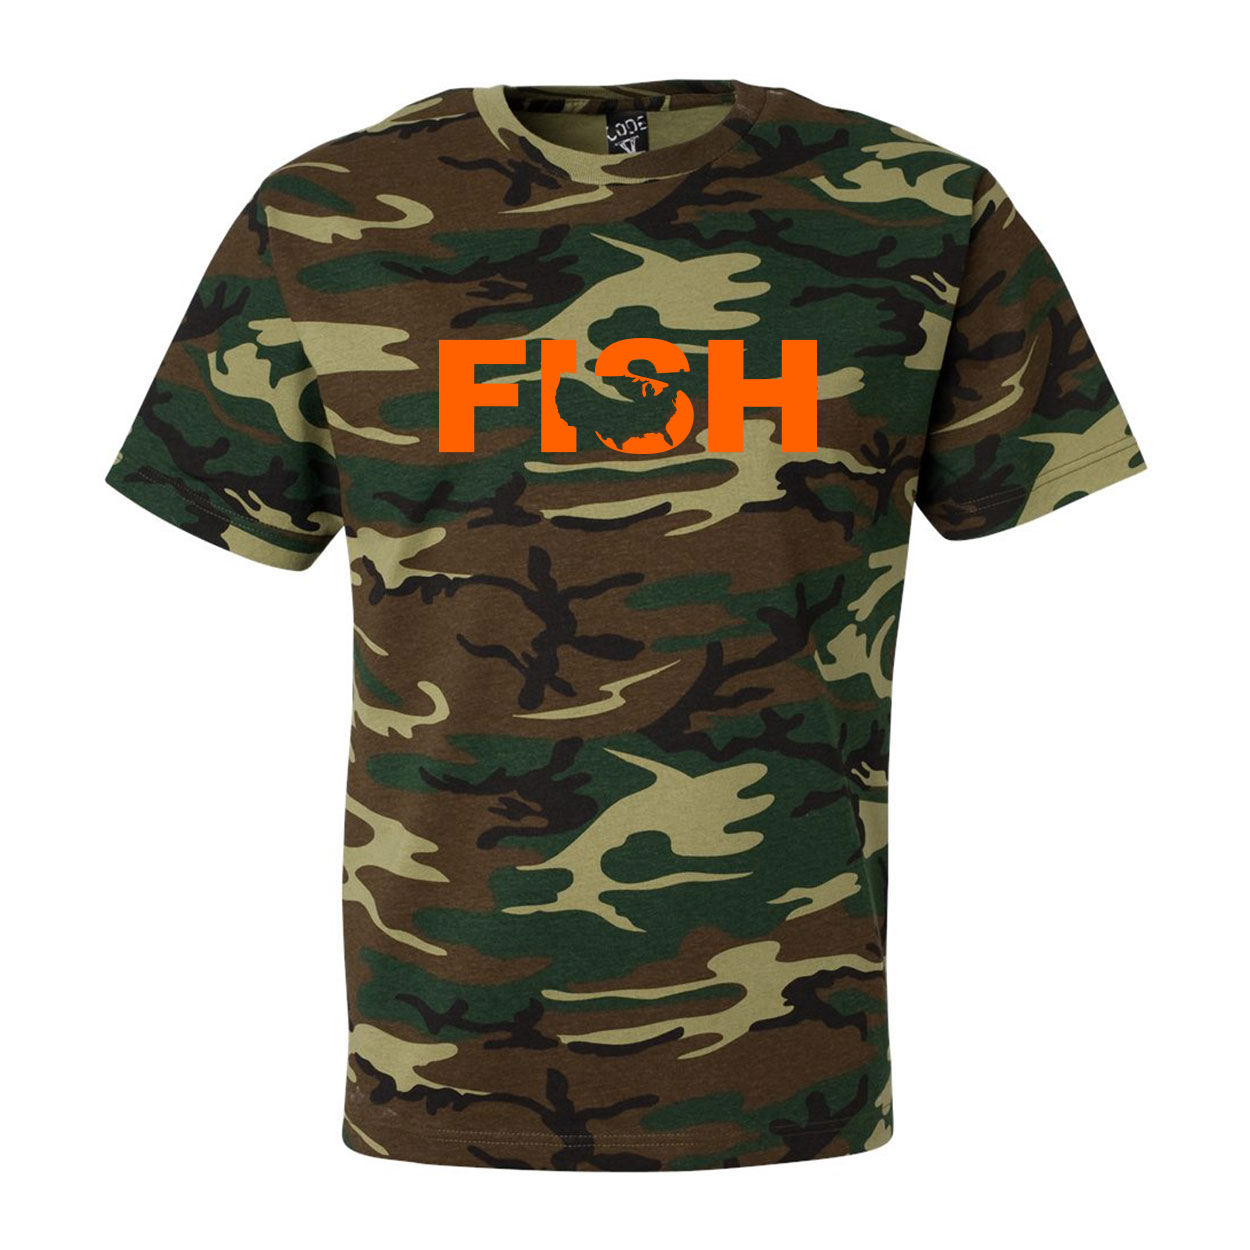 Fish United States Classic Premium T-Shirt Camo (Orange Logo)